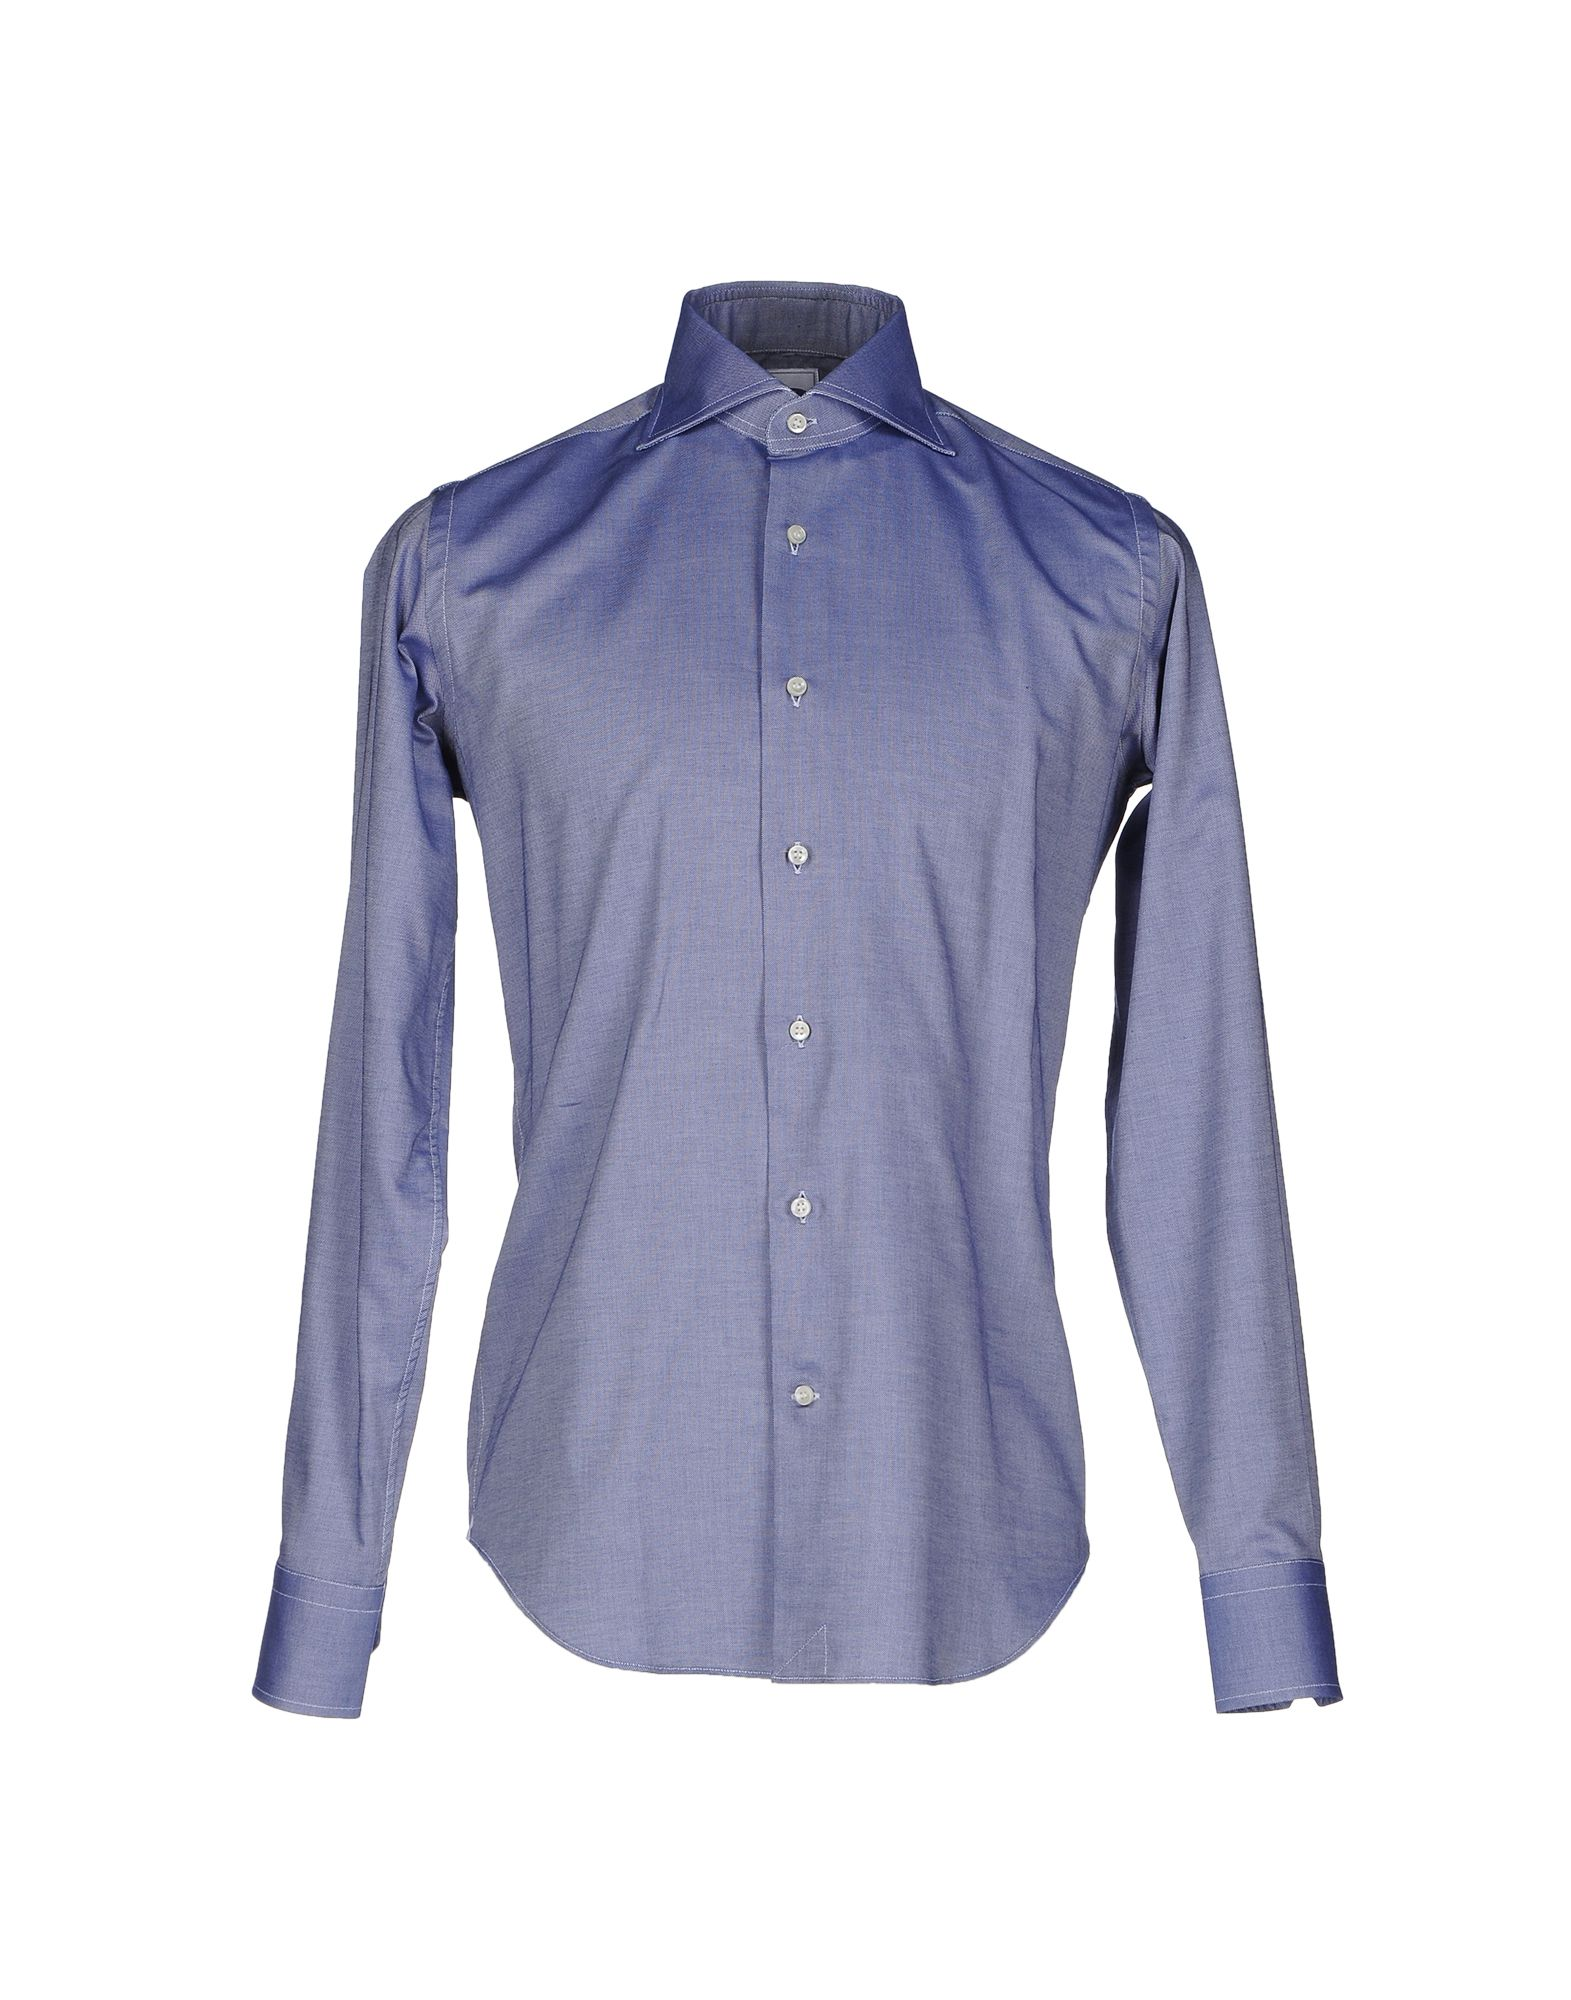 LEXINGTON Solid Color Shirt in Dark Blue